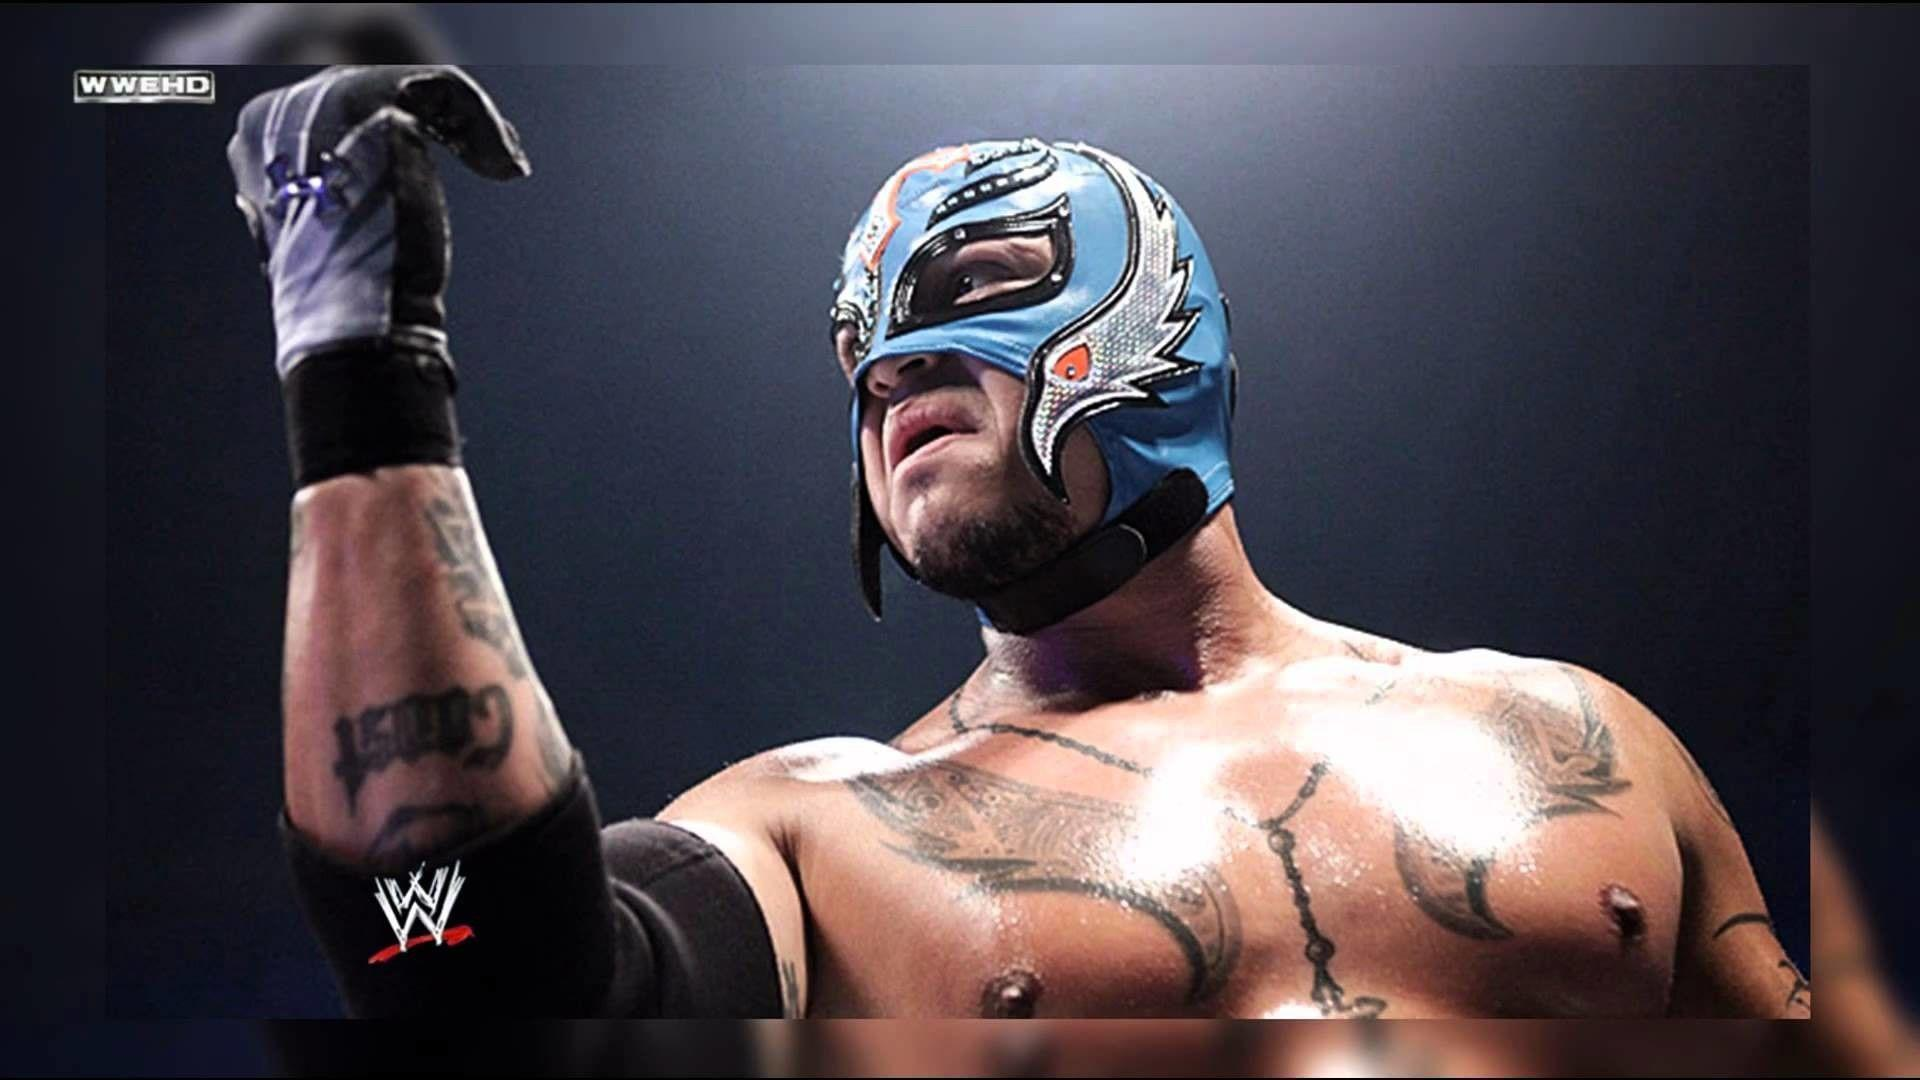 Rey Mysterio Wallpapers Hd 4k Wallpaper For Android Apk Download